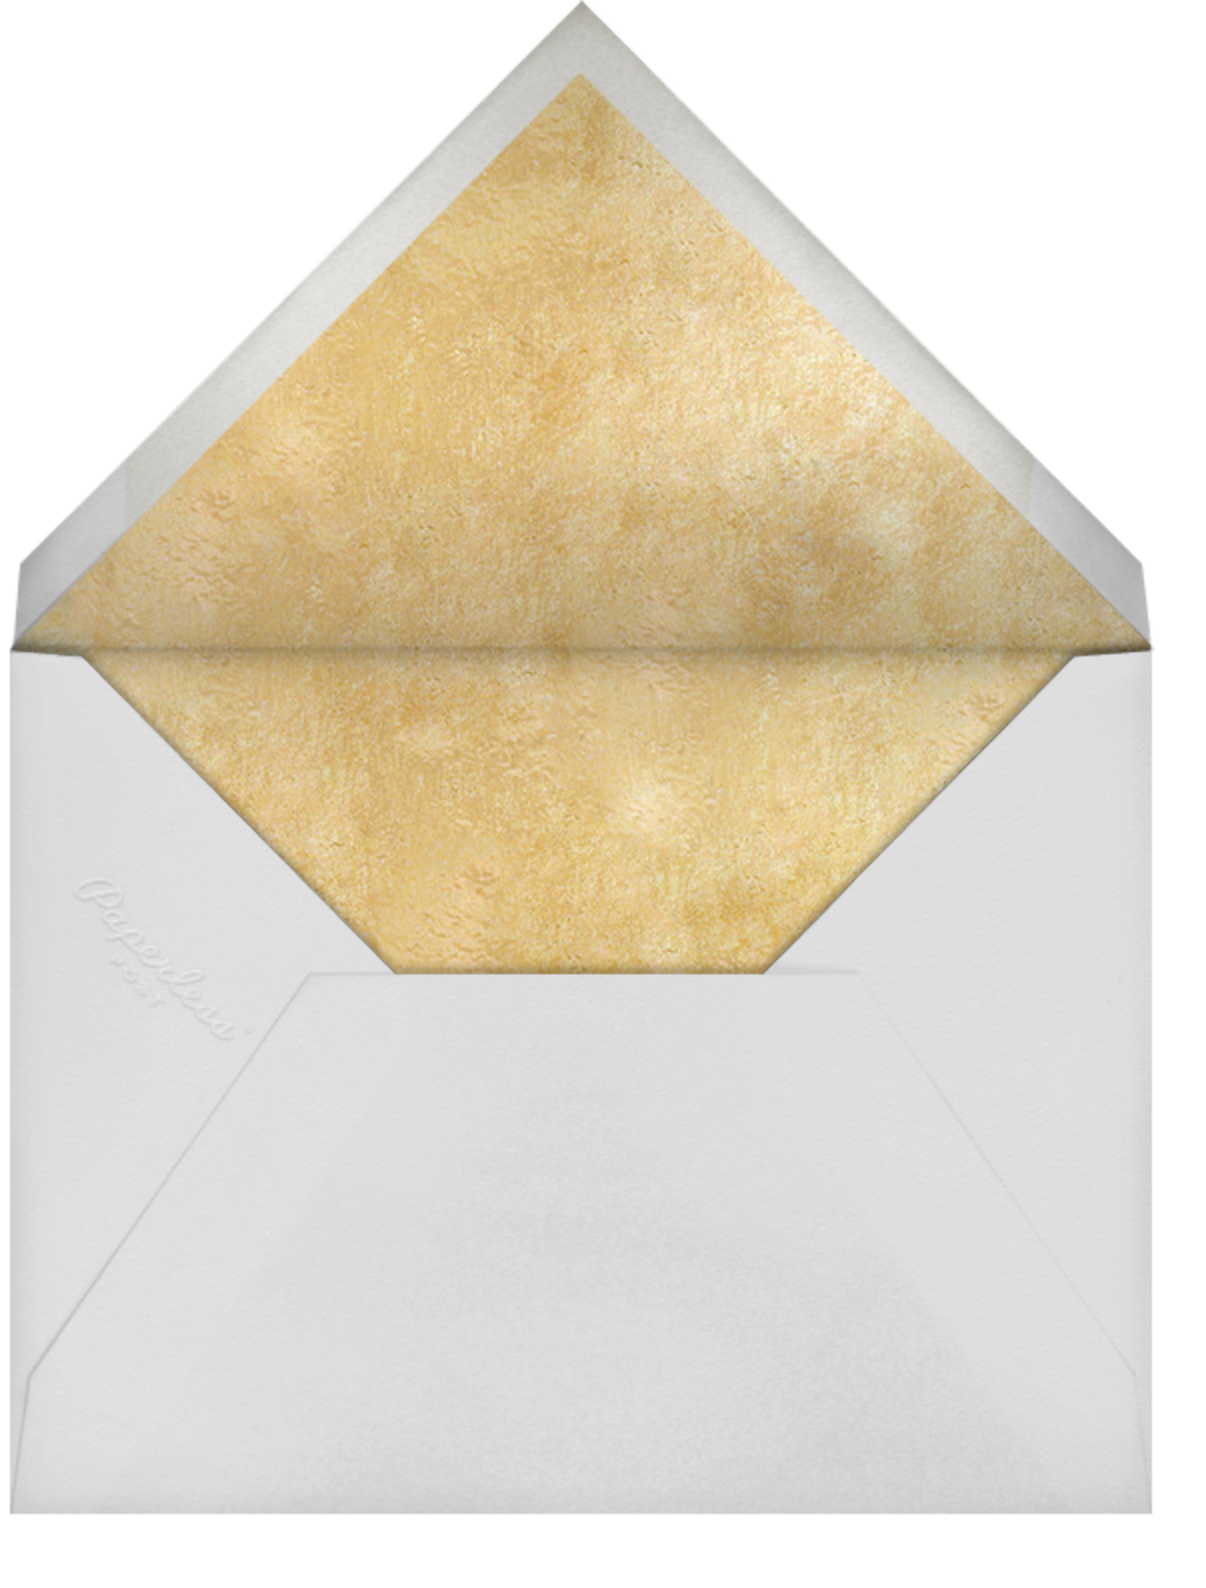 Oliver Park II (Save the Date) - Taupe/Gold - kate spade new york - Gold and metallic - envelope back